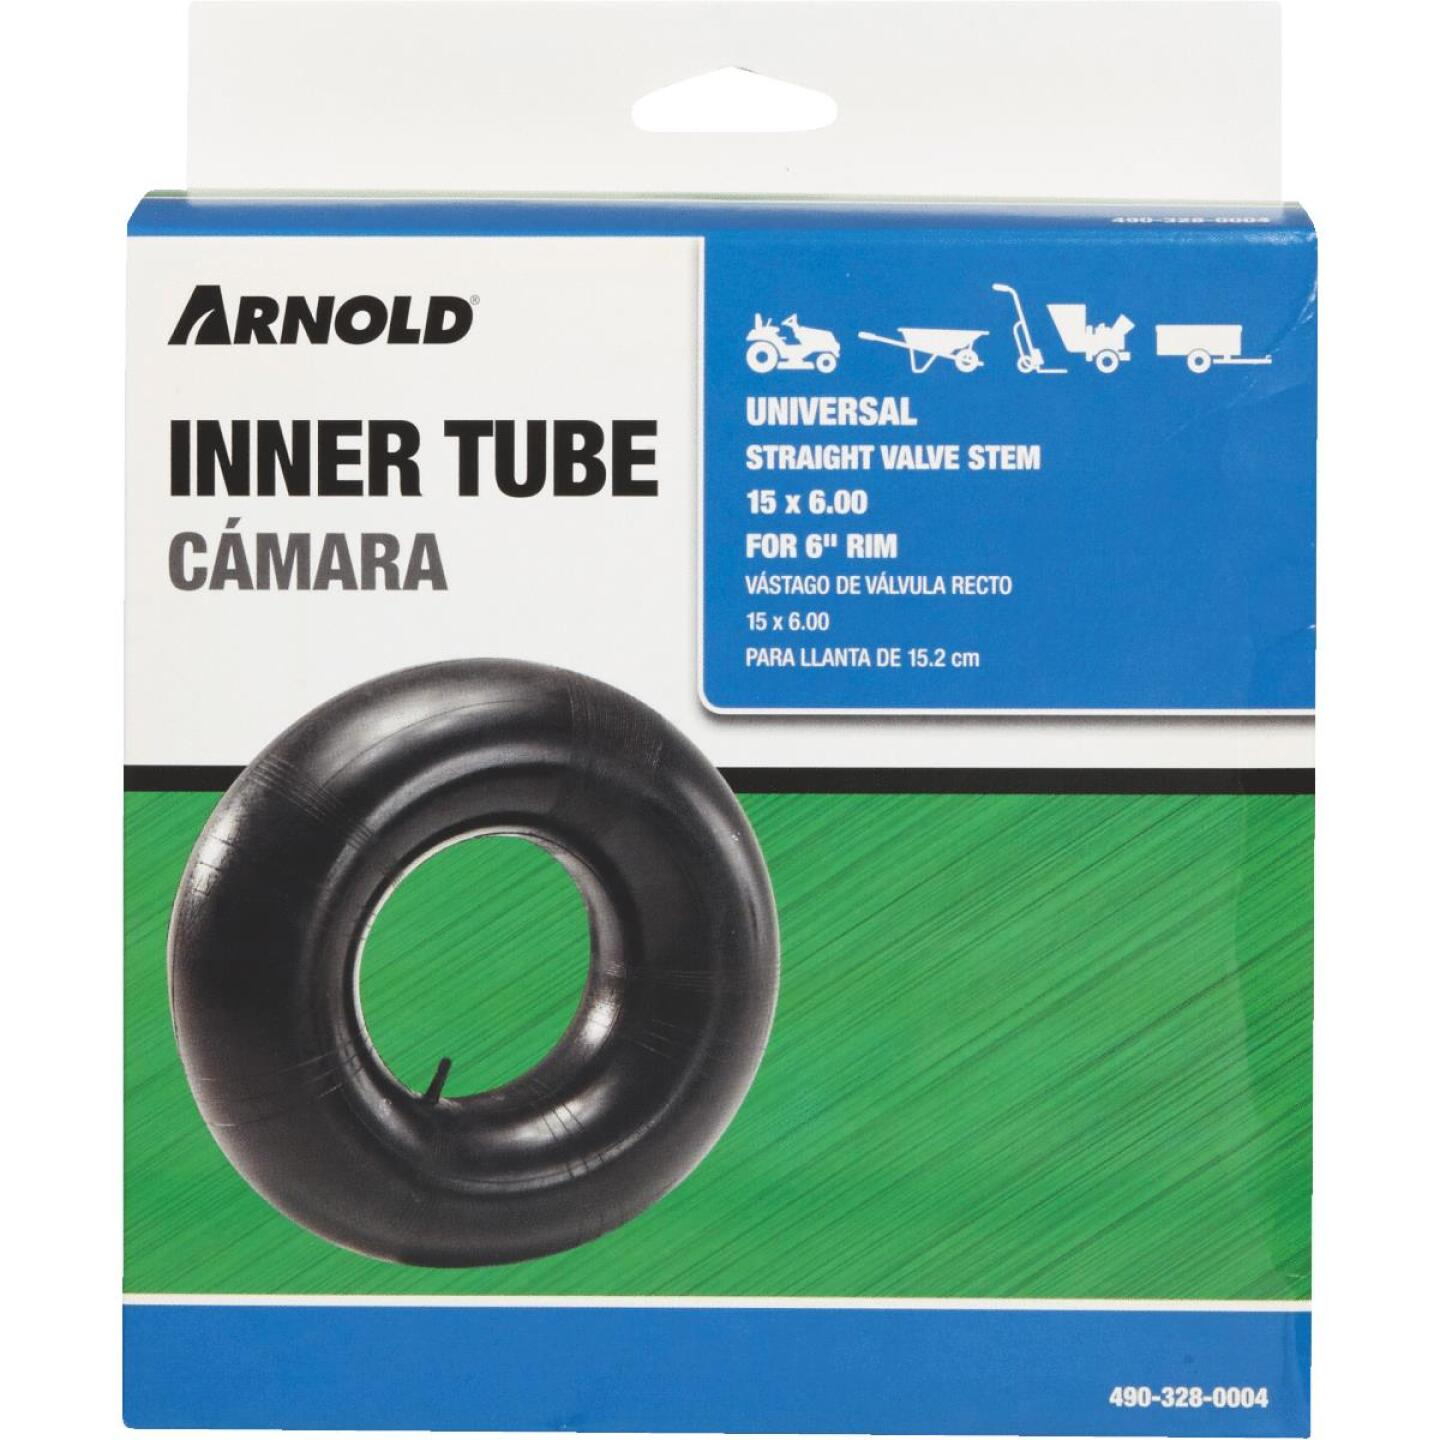 Arnold 15 In. x 6 In. Replacement Lawn Mower Inner Tube Image 2